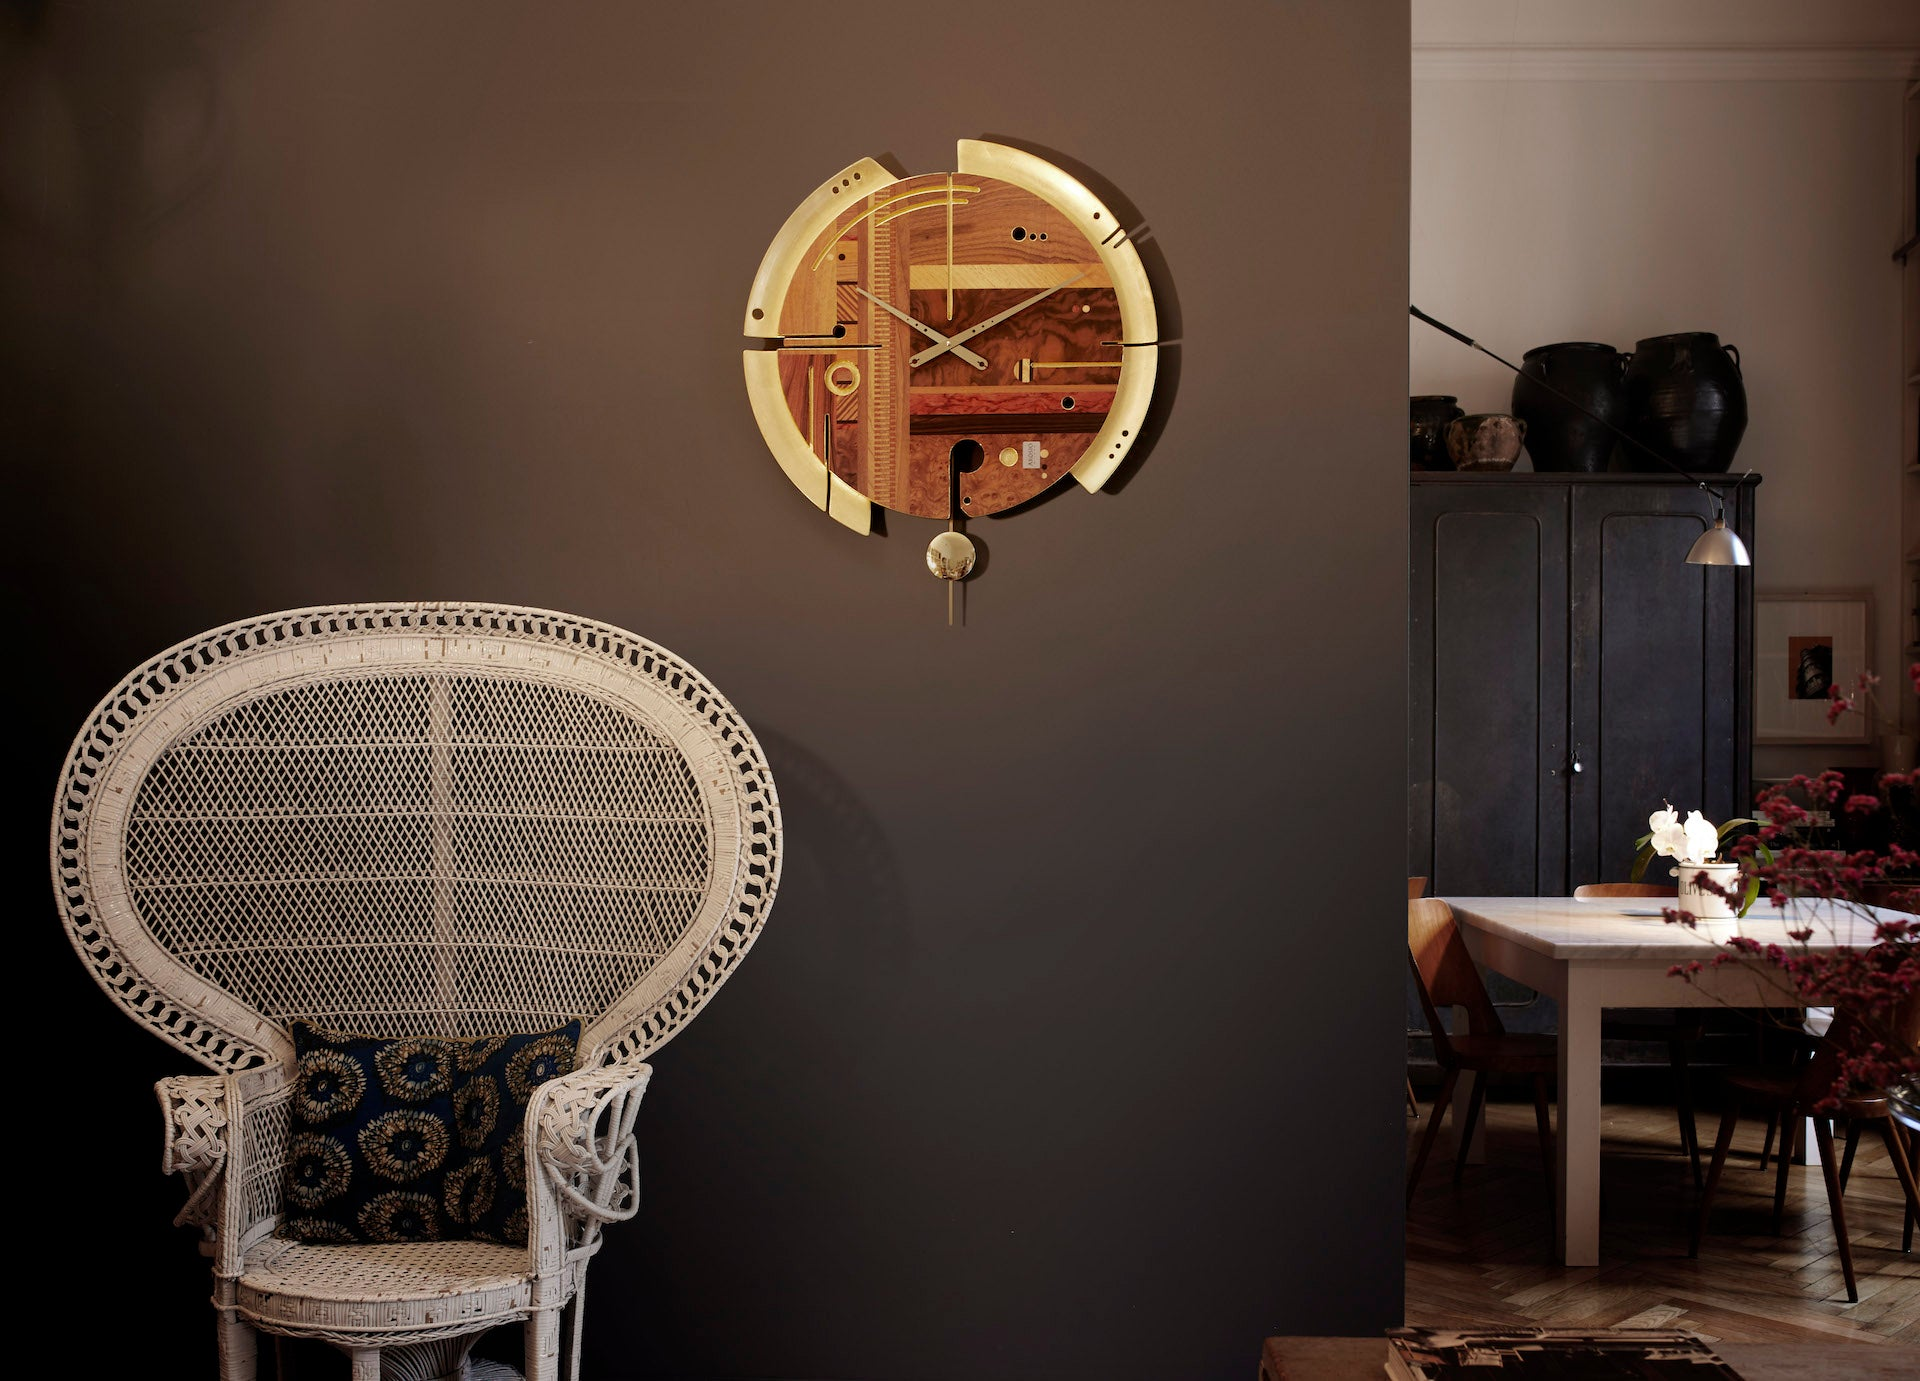 A good idea to enrich your wall - Gold wall clock - expensive clock design - Design Wall Clock by Arosio Milano